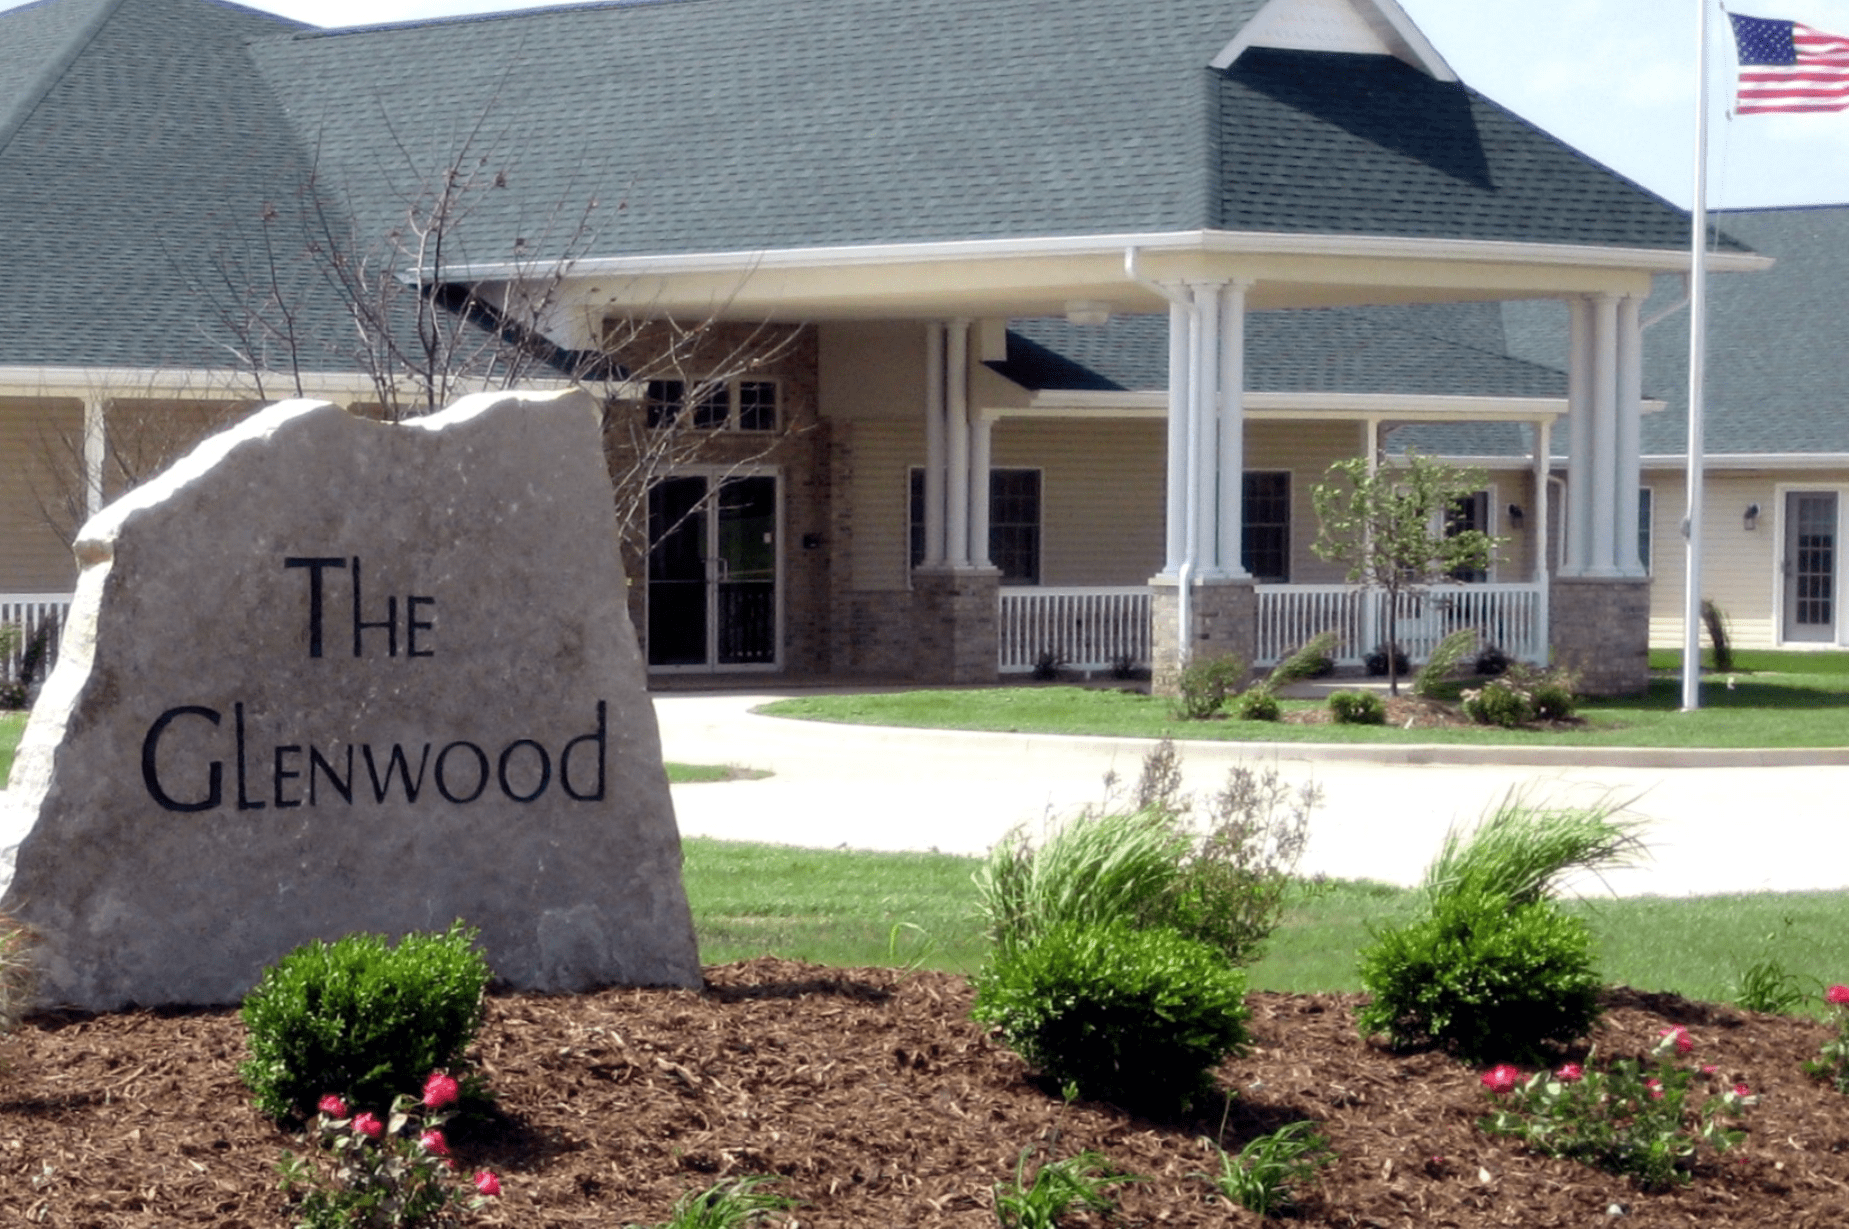 Photo 1 of The Glenwood Assisted Living of Mahomet